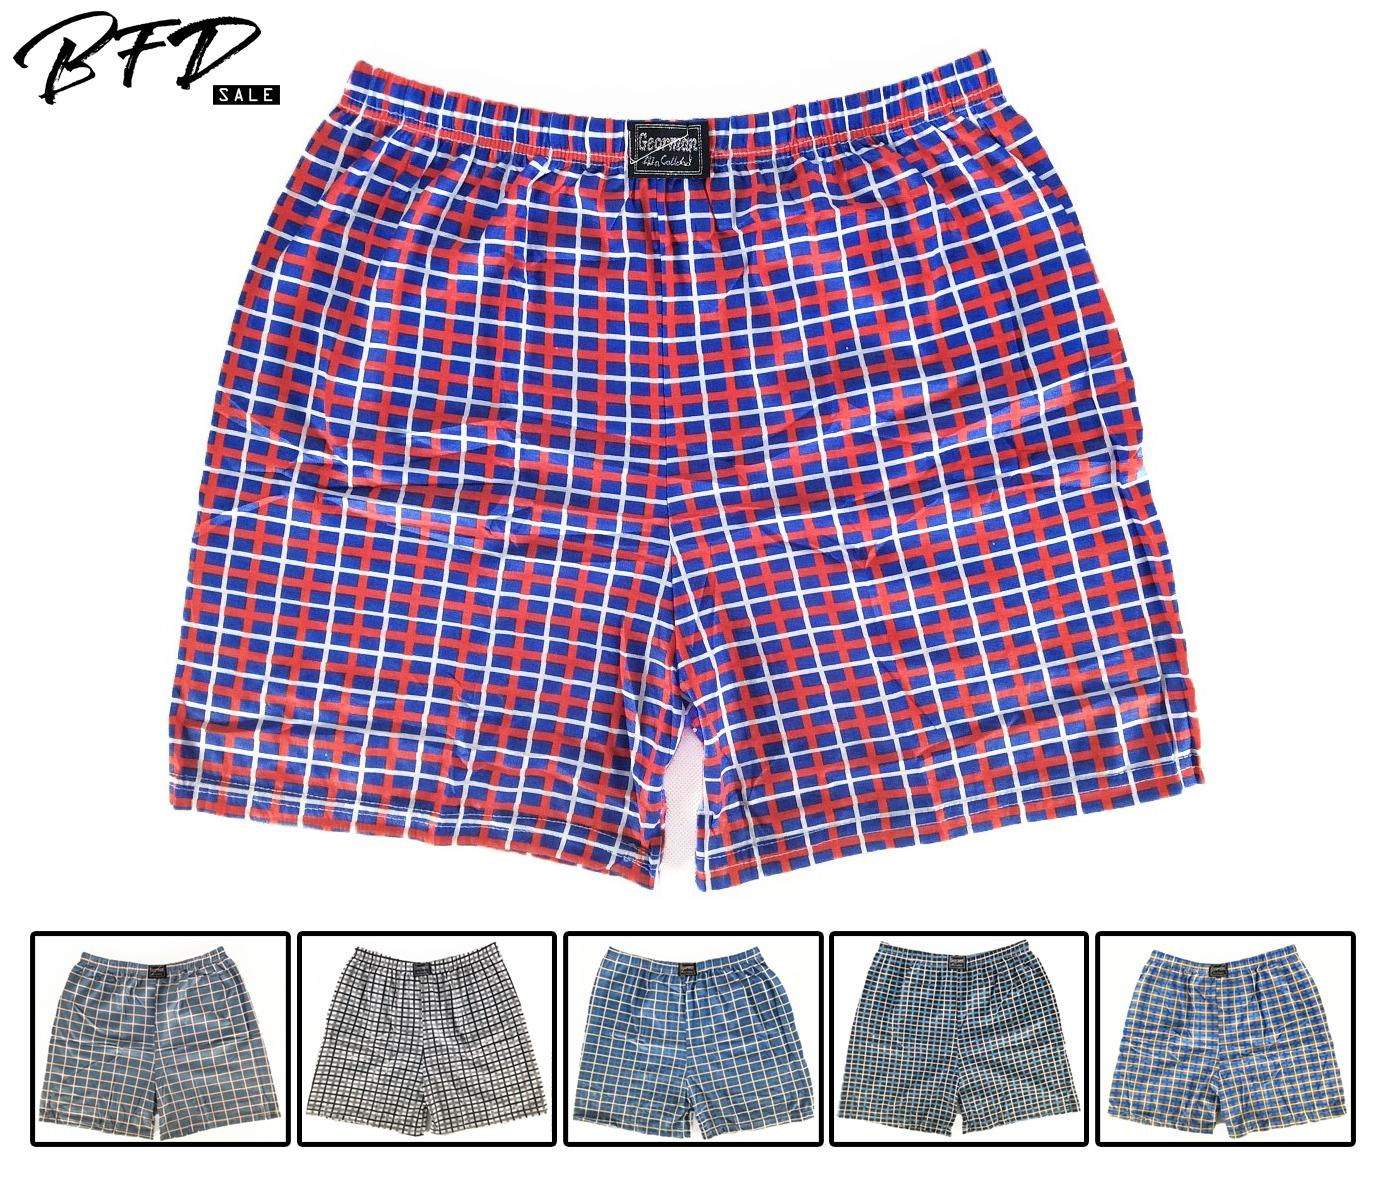 12 Pcs Mens Gingham Design Boxer Shorts / Brief / Underwear / Trunks By Direct Factory Sales.